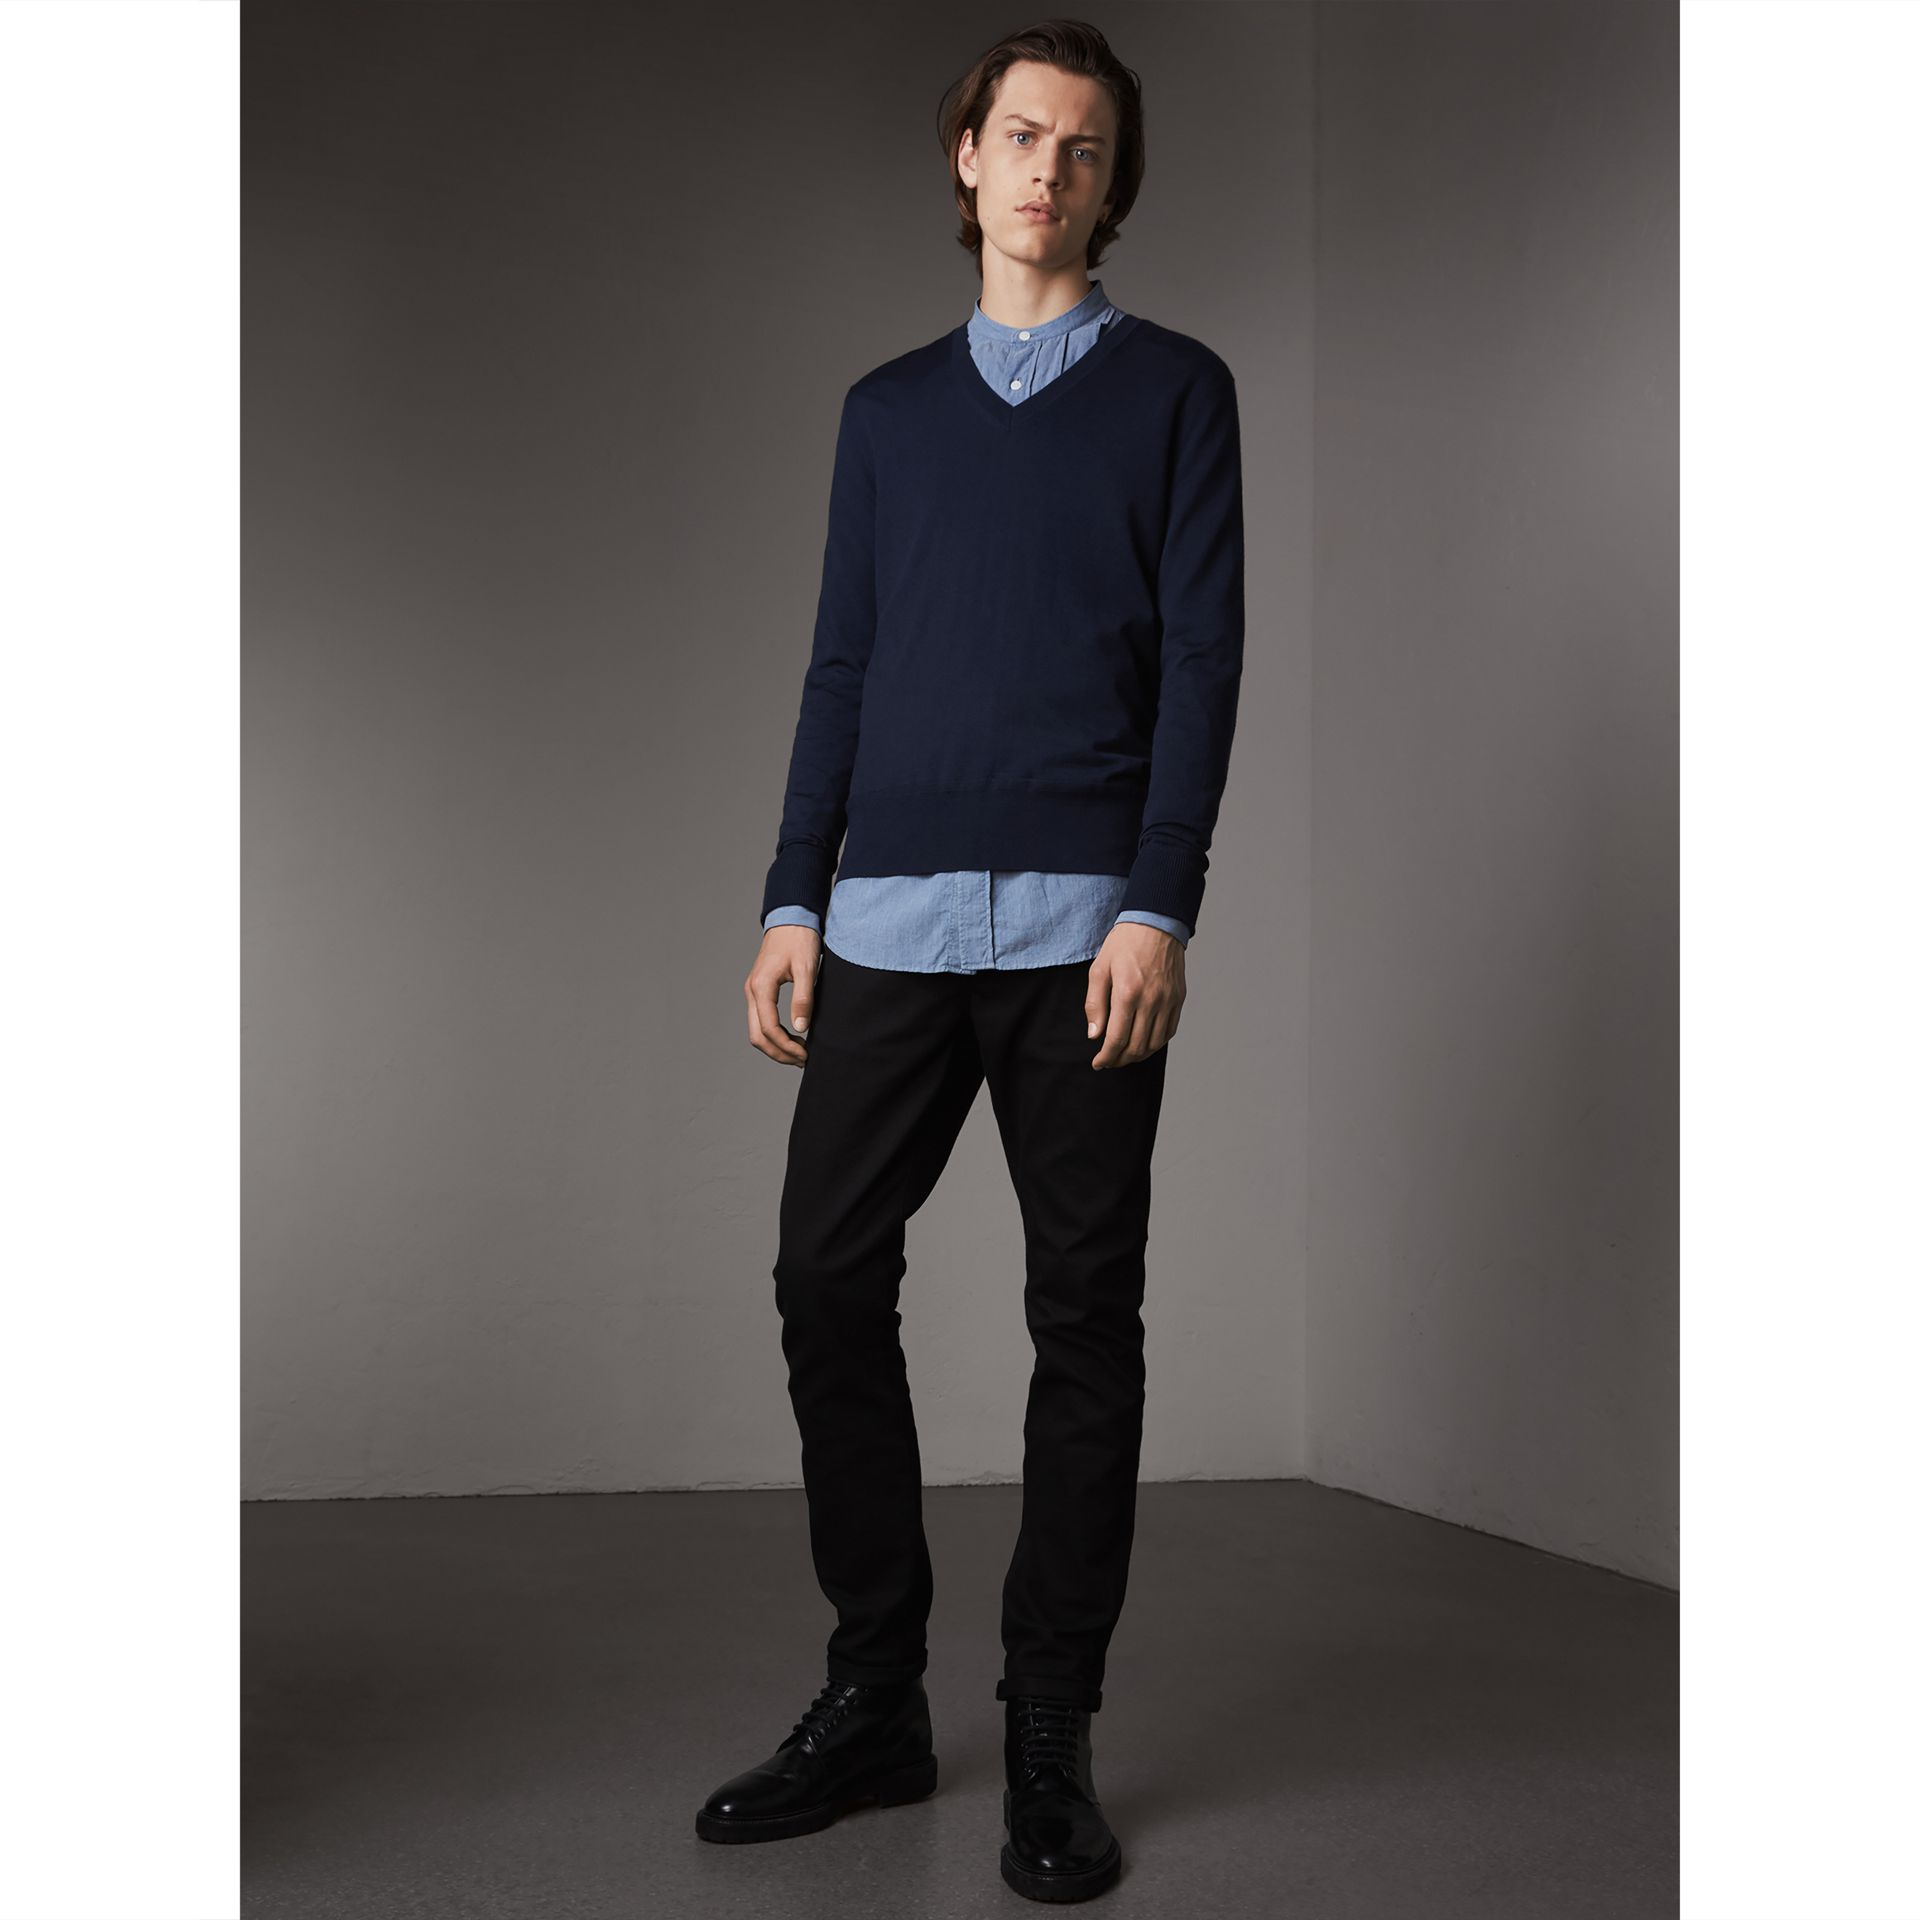 Merino Wool V-neck Sweater in Navy - Men | Burberry Singapore - gallery image 1